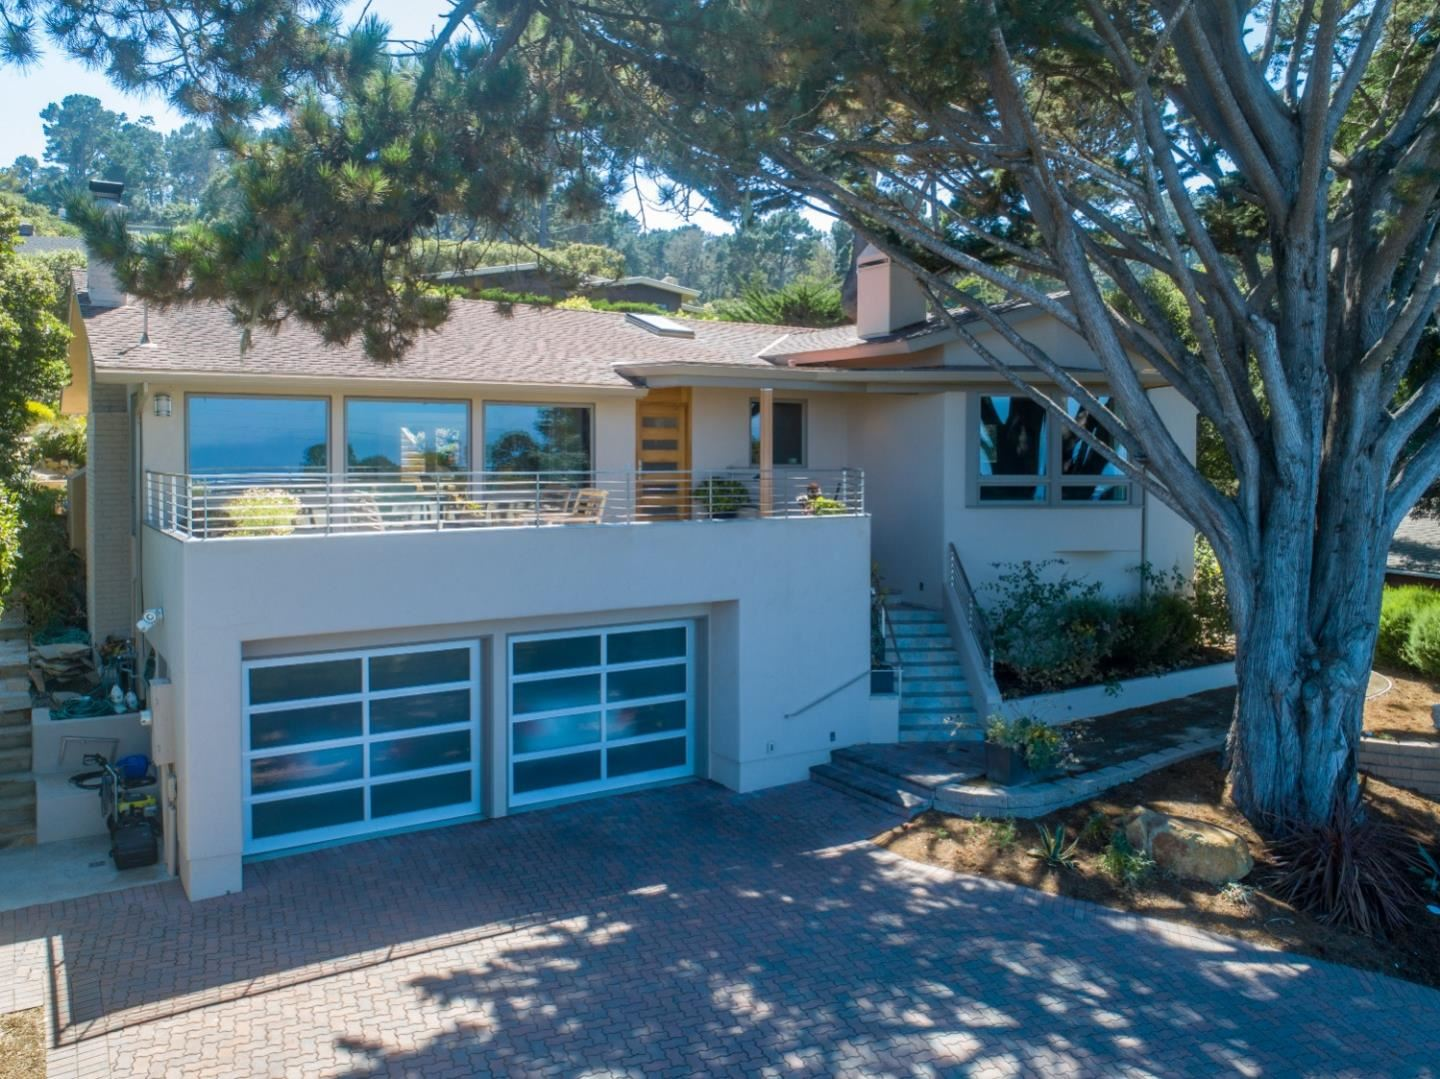 Photo for 151 Mar Vista DR, MONTEREY, CA 93940 (MLS # ML81764296)